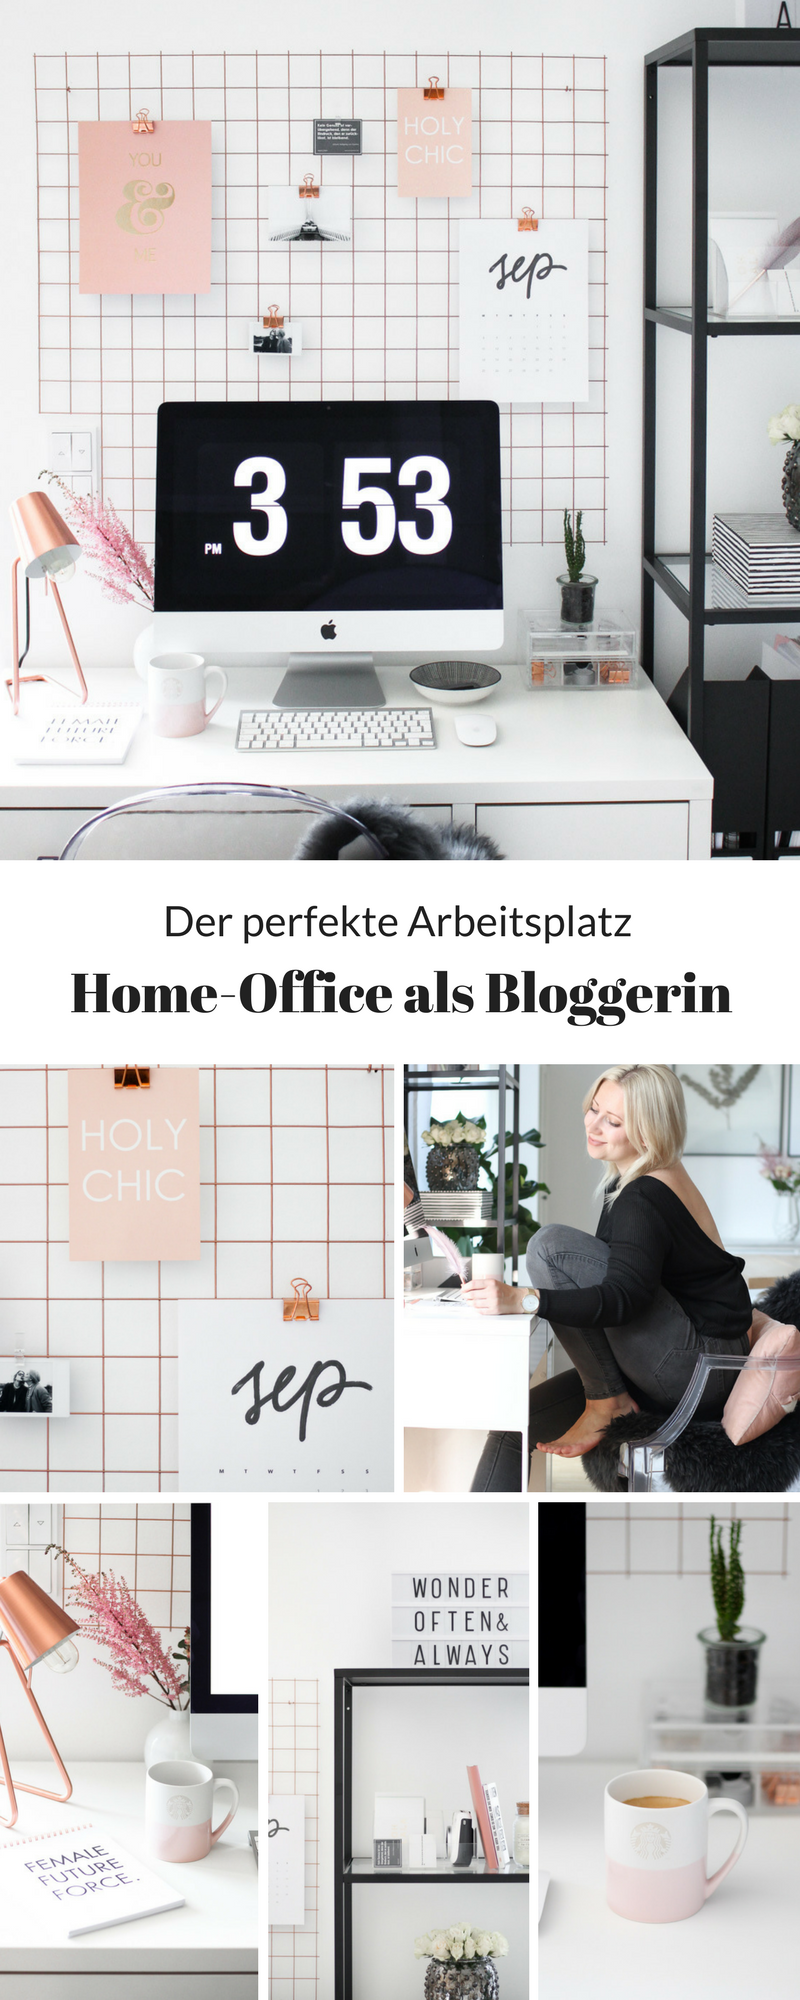 zuhause arbeiten inspirierendes home office in 2018 puppenzirkus pinterest micke. Black Bedroom Furniture Sets. Home Design Ideas